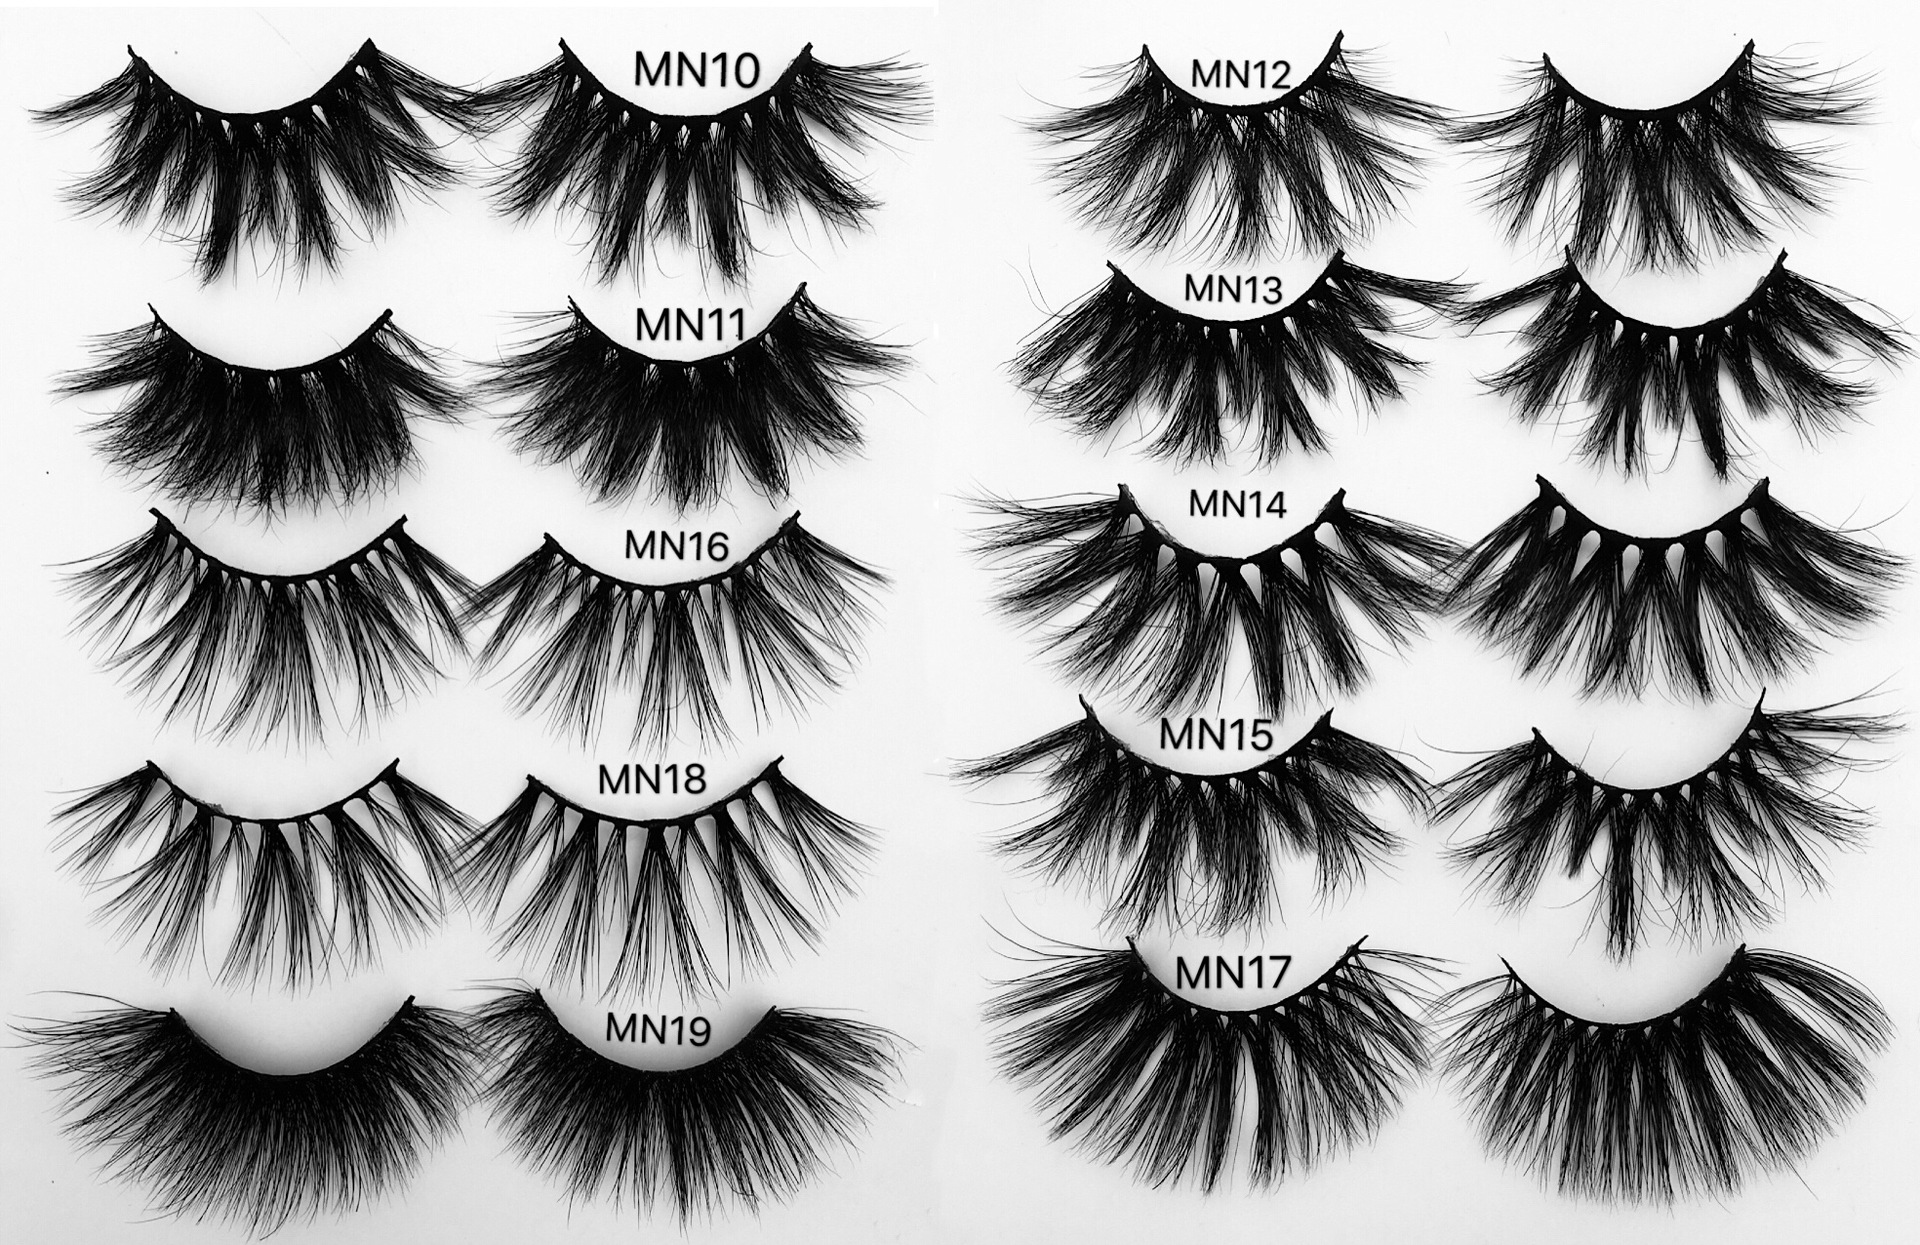 25mm 27mm Extrac Long Lashes 3D Mink Hair False Eyelashes Long Wispies Fluffy Multilayers Eyelashes Cruelty-free Extension MN11